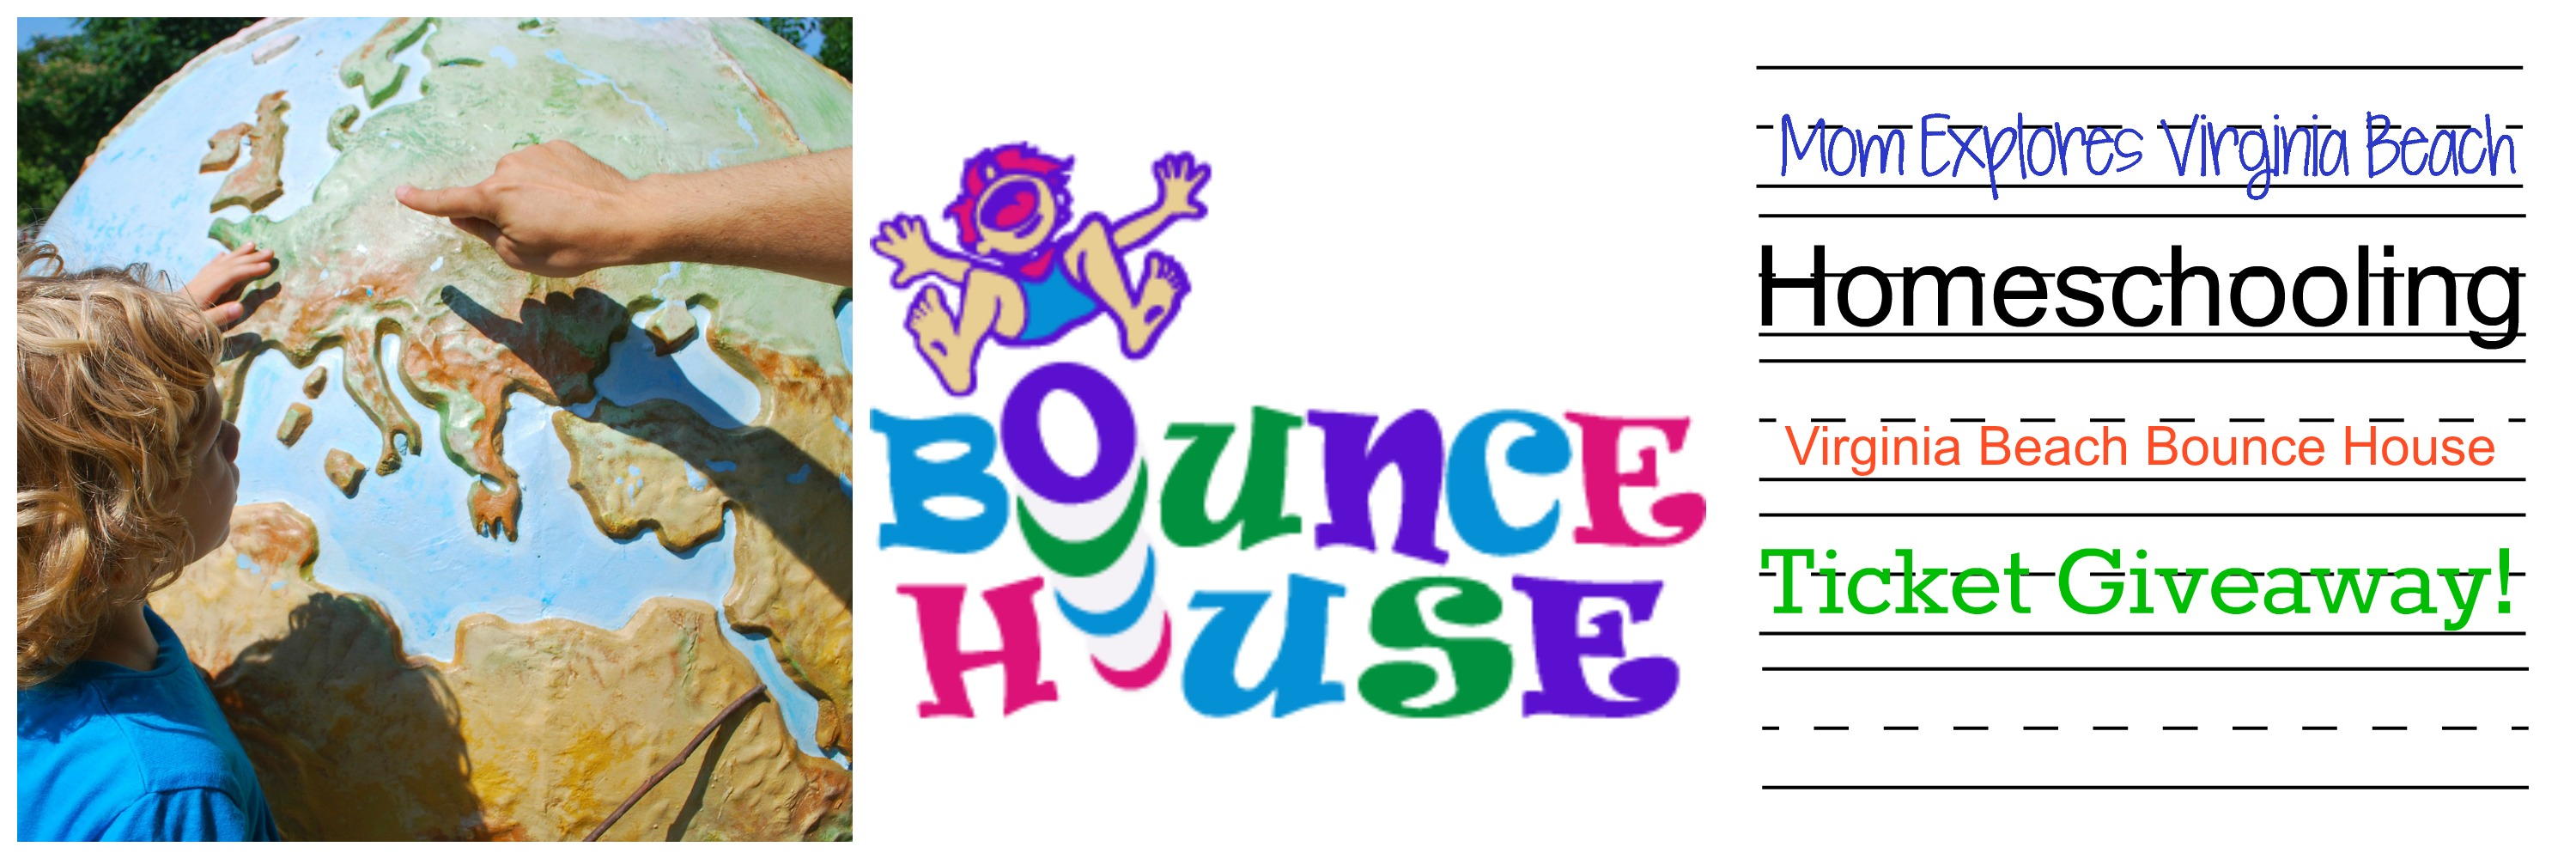 92fdeff49 Virginia Beach Bounce House Ticket Giveaway for Homeschoolers - Mom ...